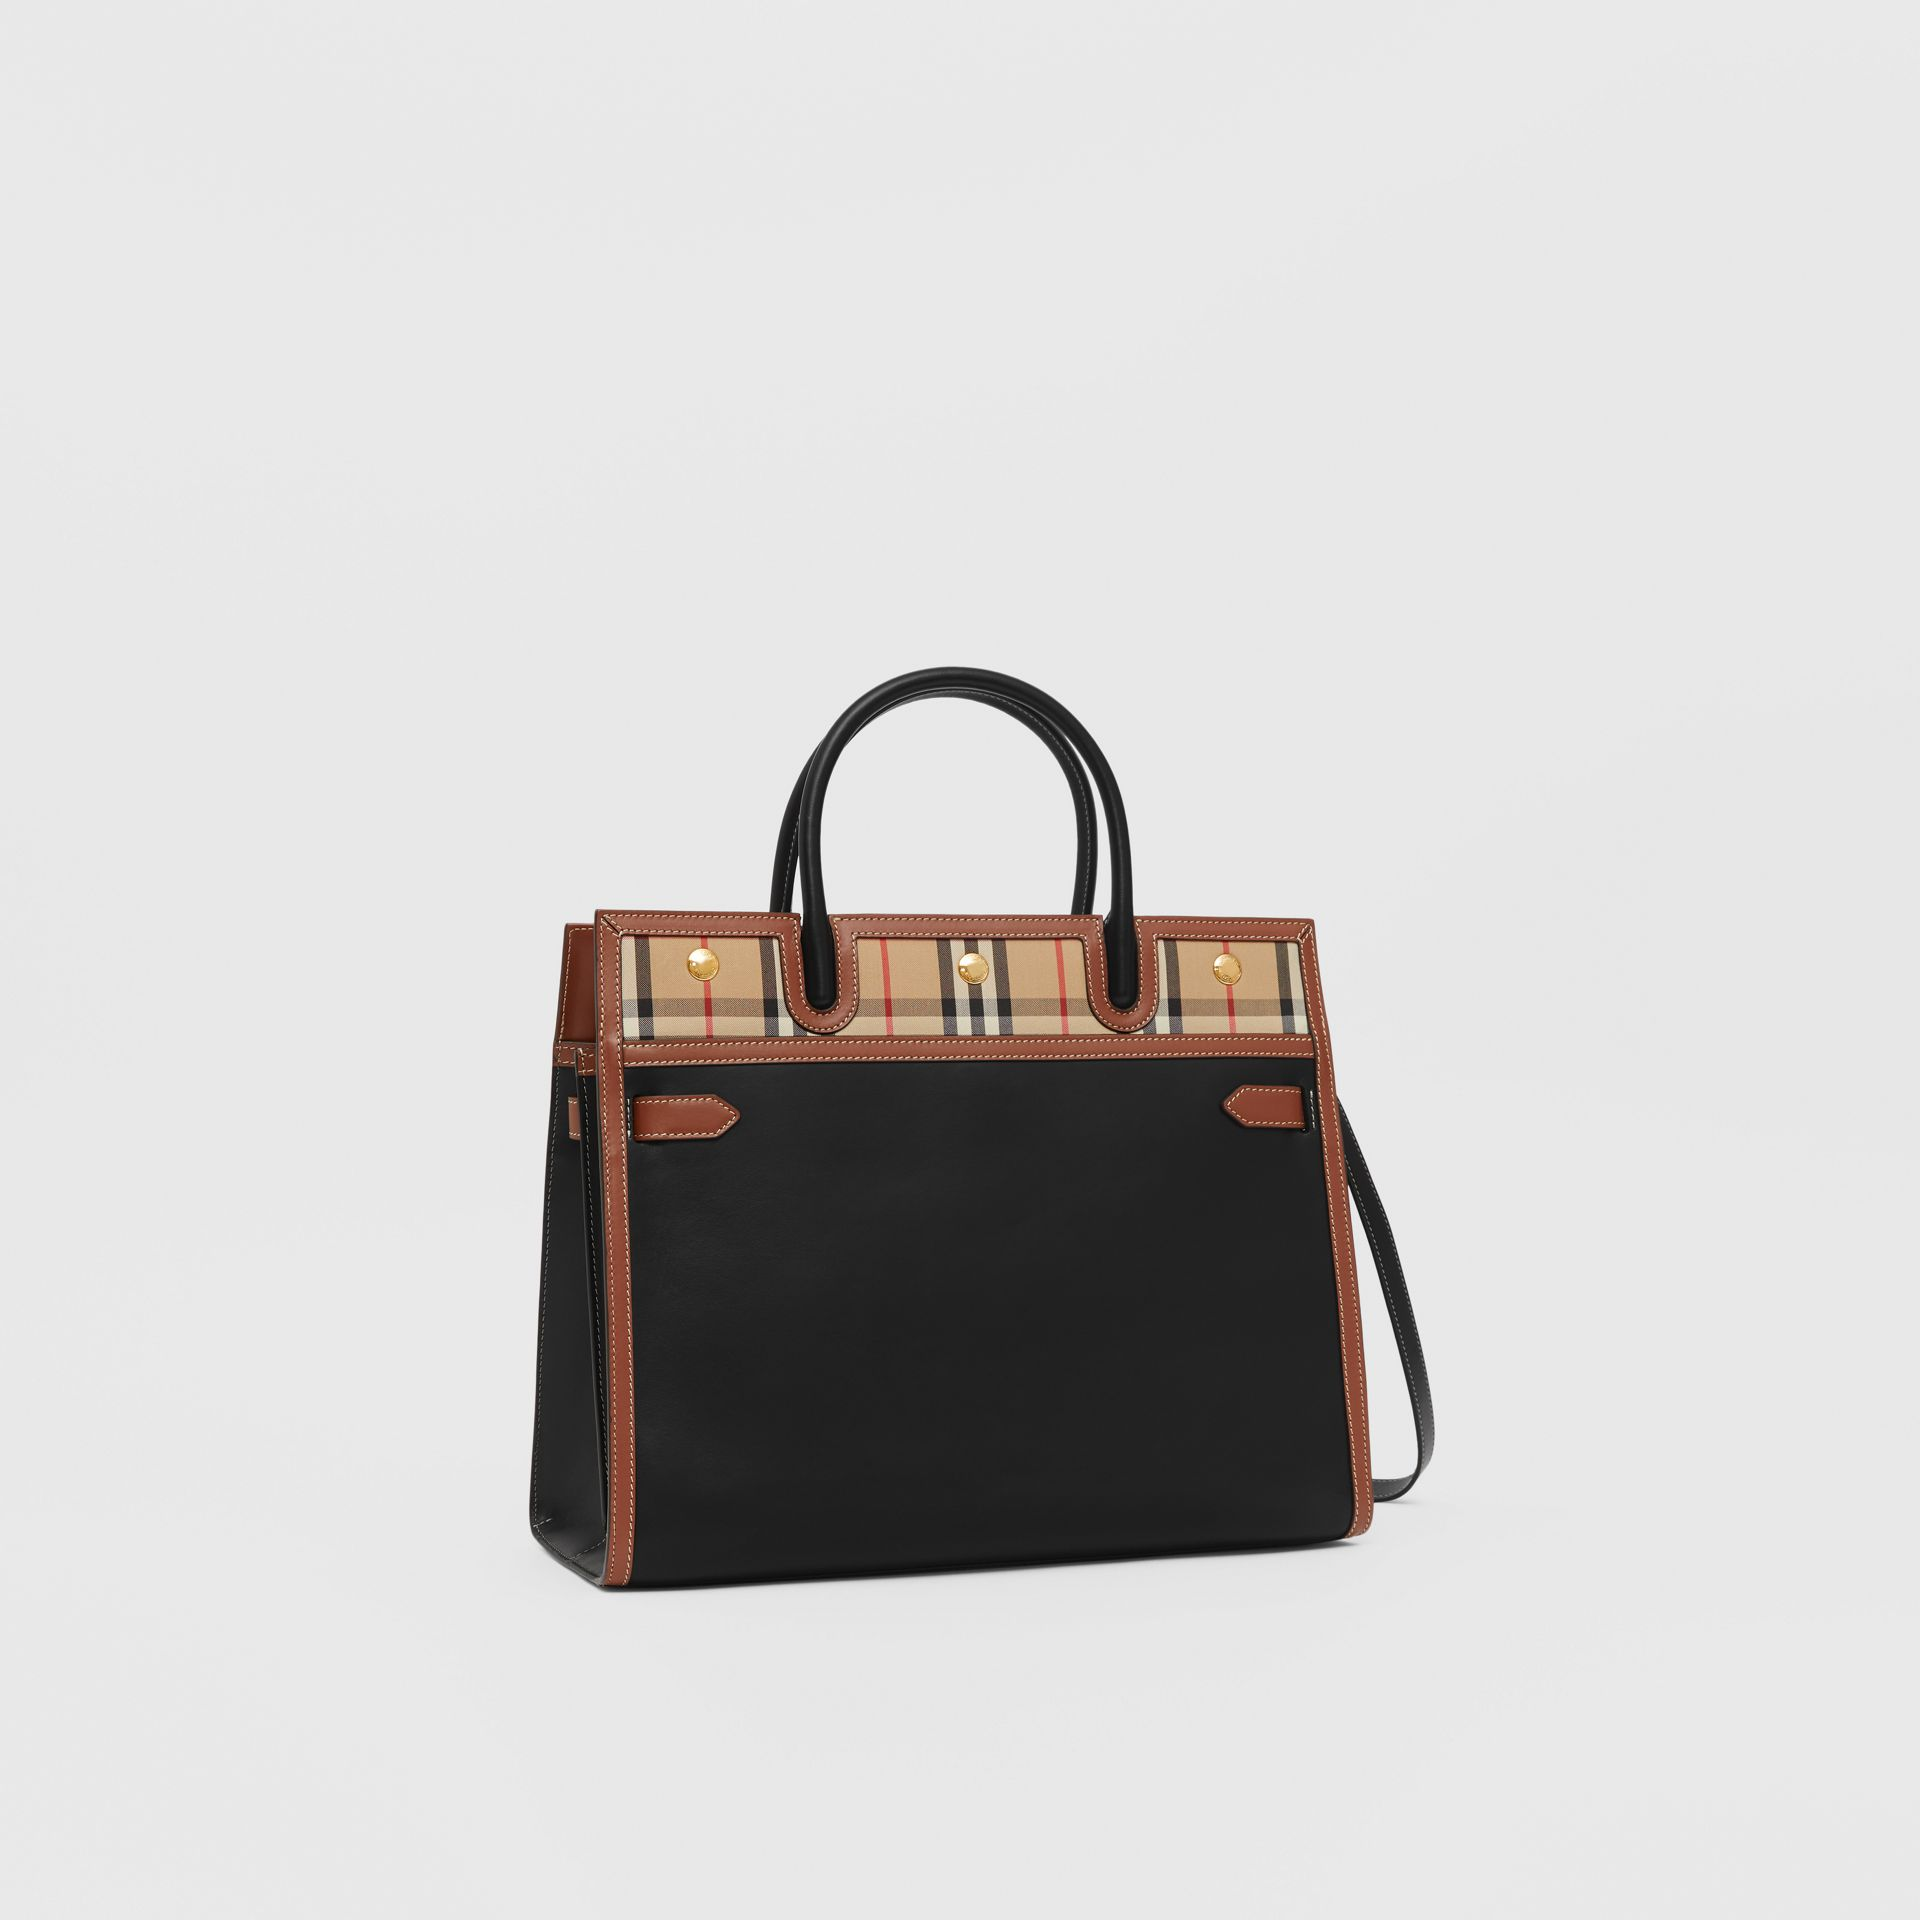 Mini Leather and Vintage Check Two-handle Title Bag in Black - Women | Burberry - gallery image 6